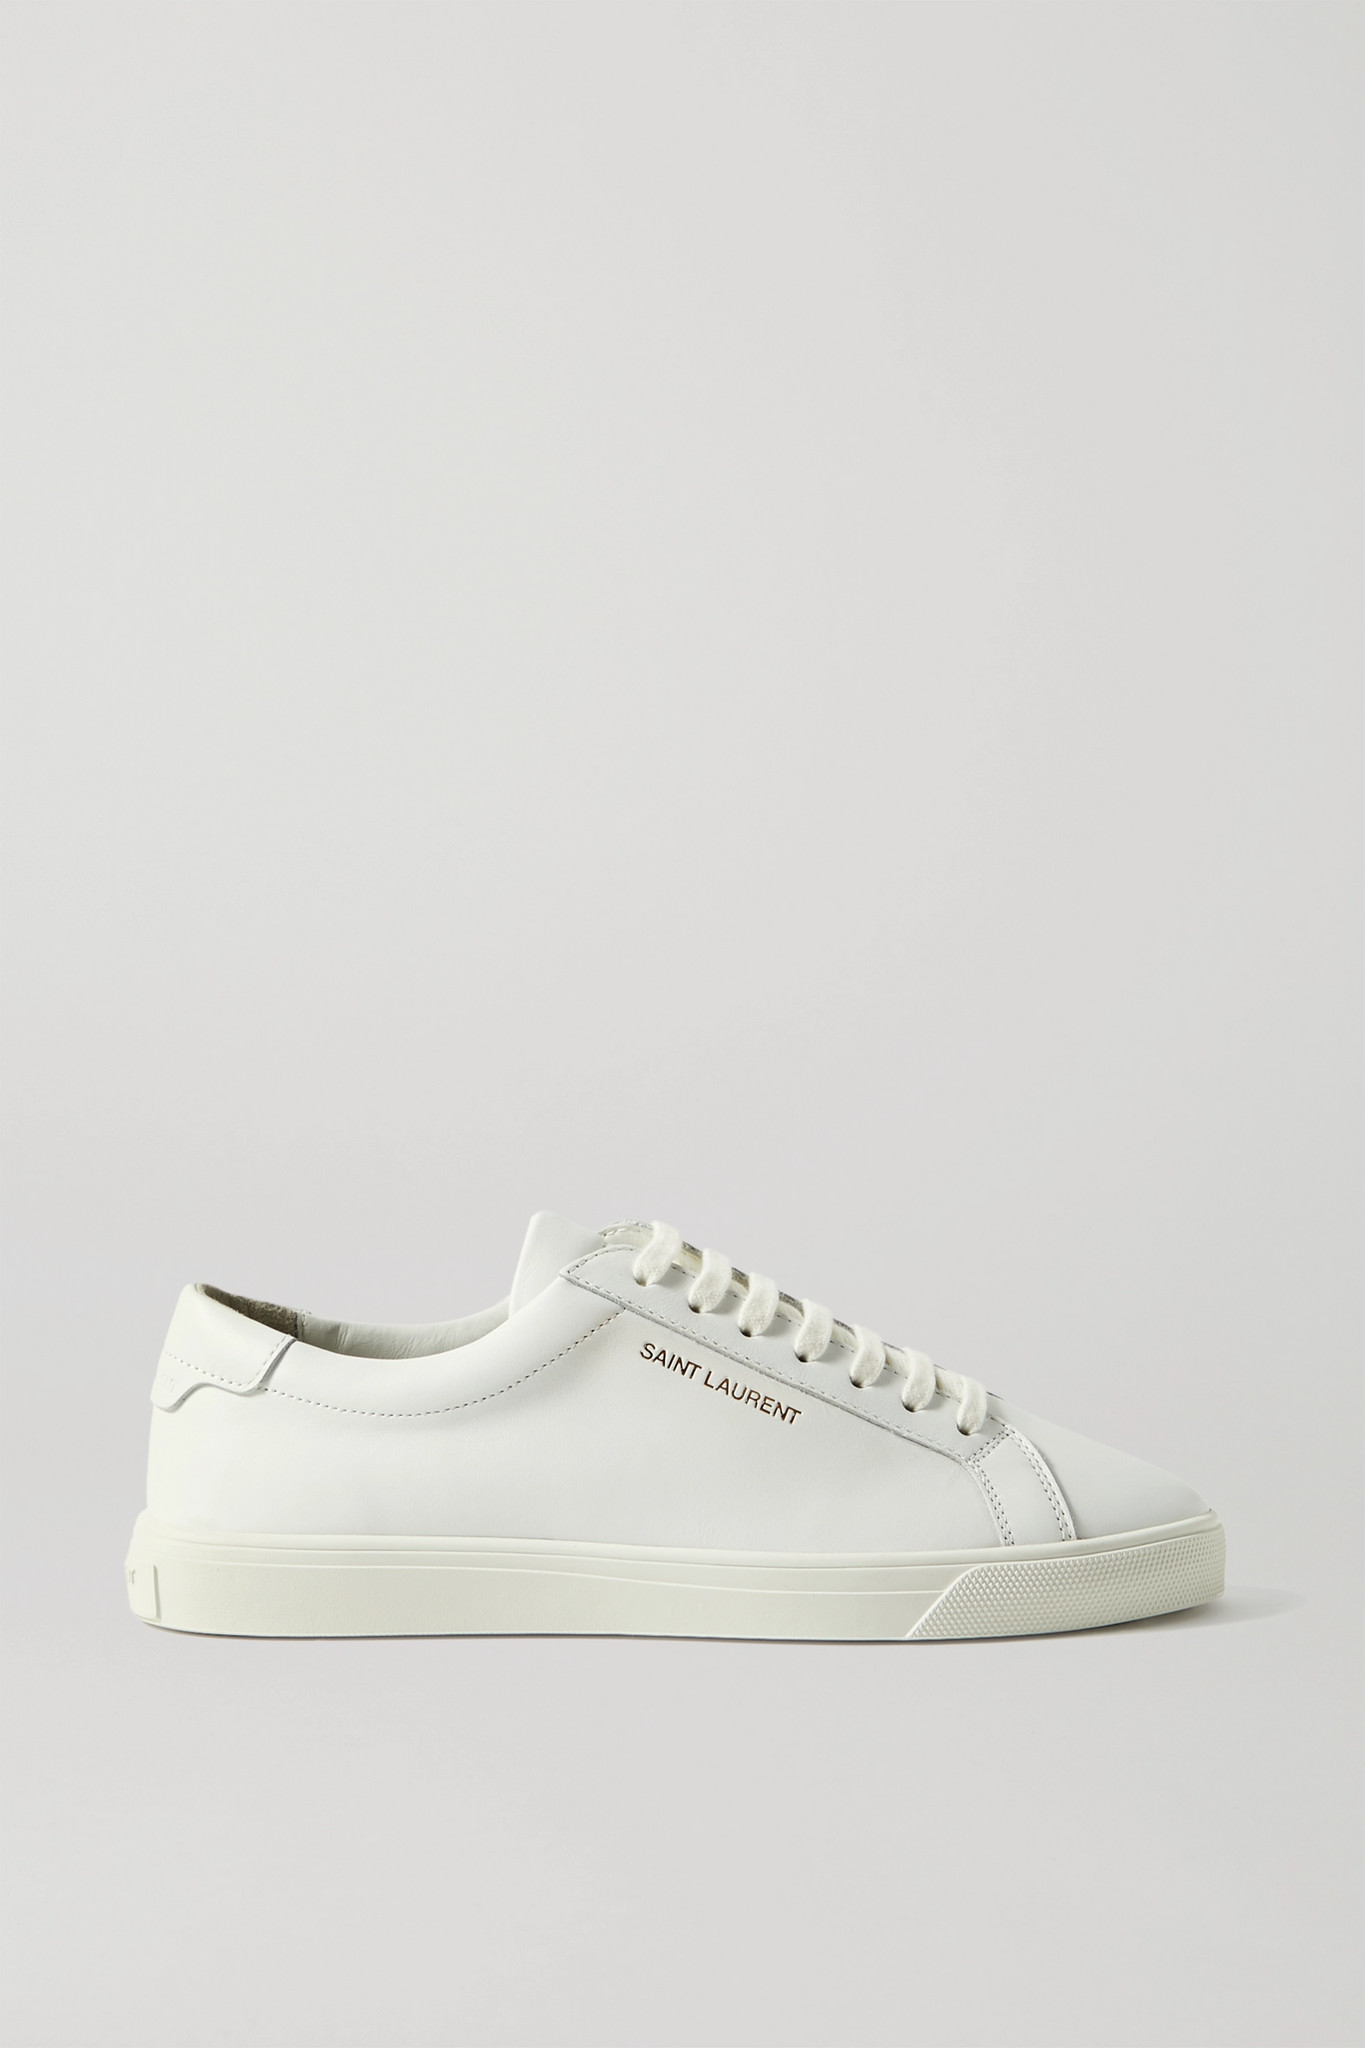 SAINT LAURENT - Andy Logo-print Leather Sneakers - White - IT36.5